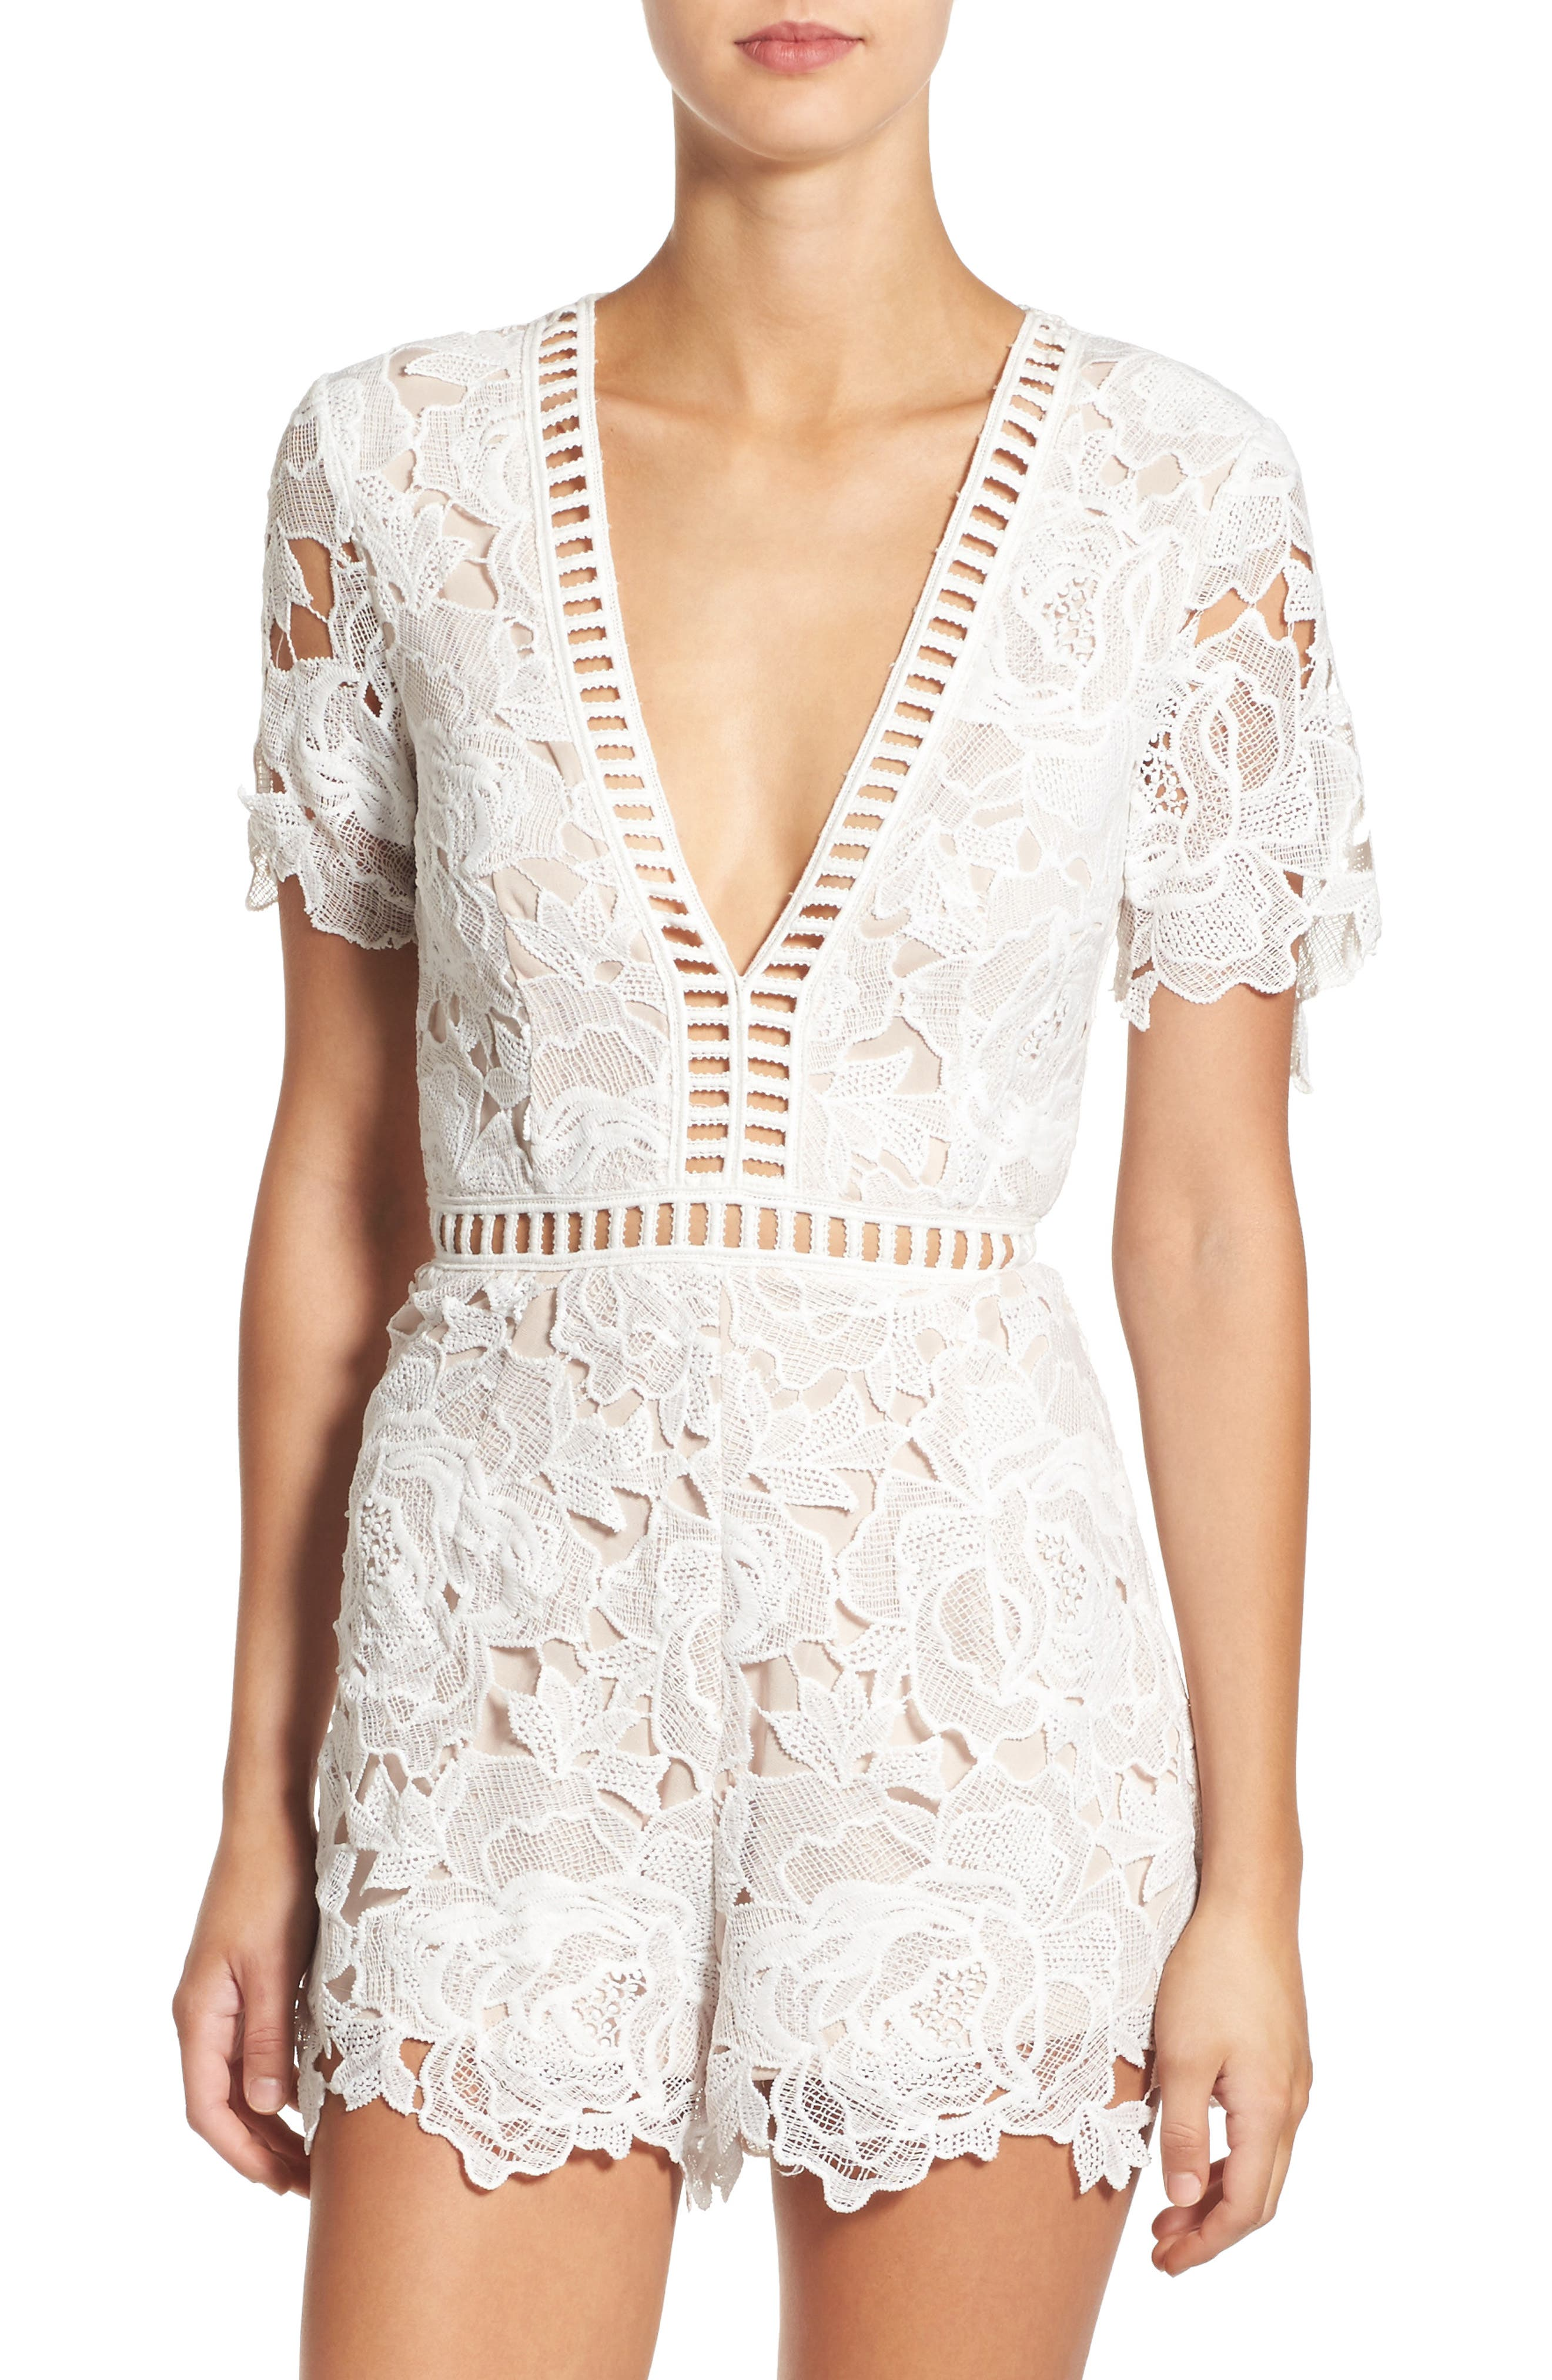 Ladder Inset Lace Romper,                         Main,                         color, 100